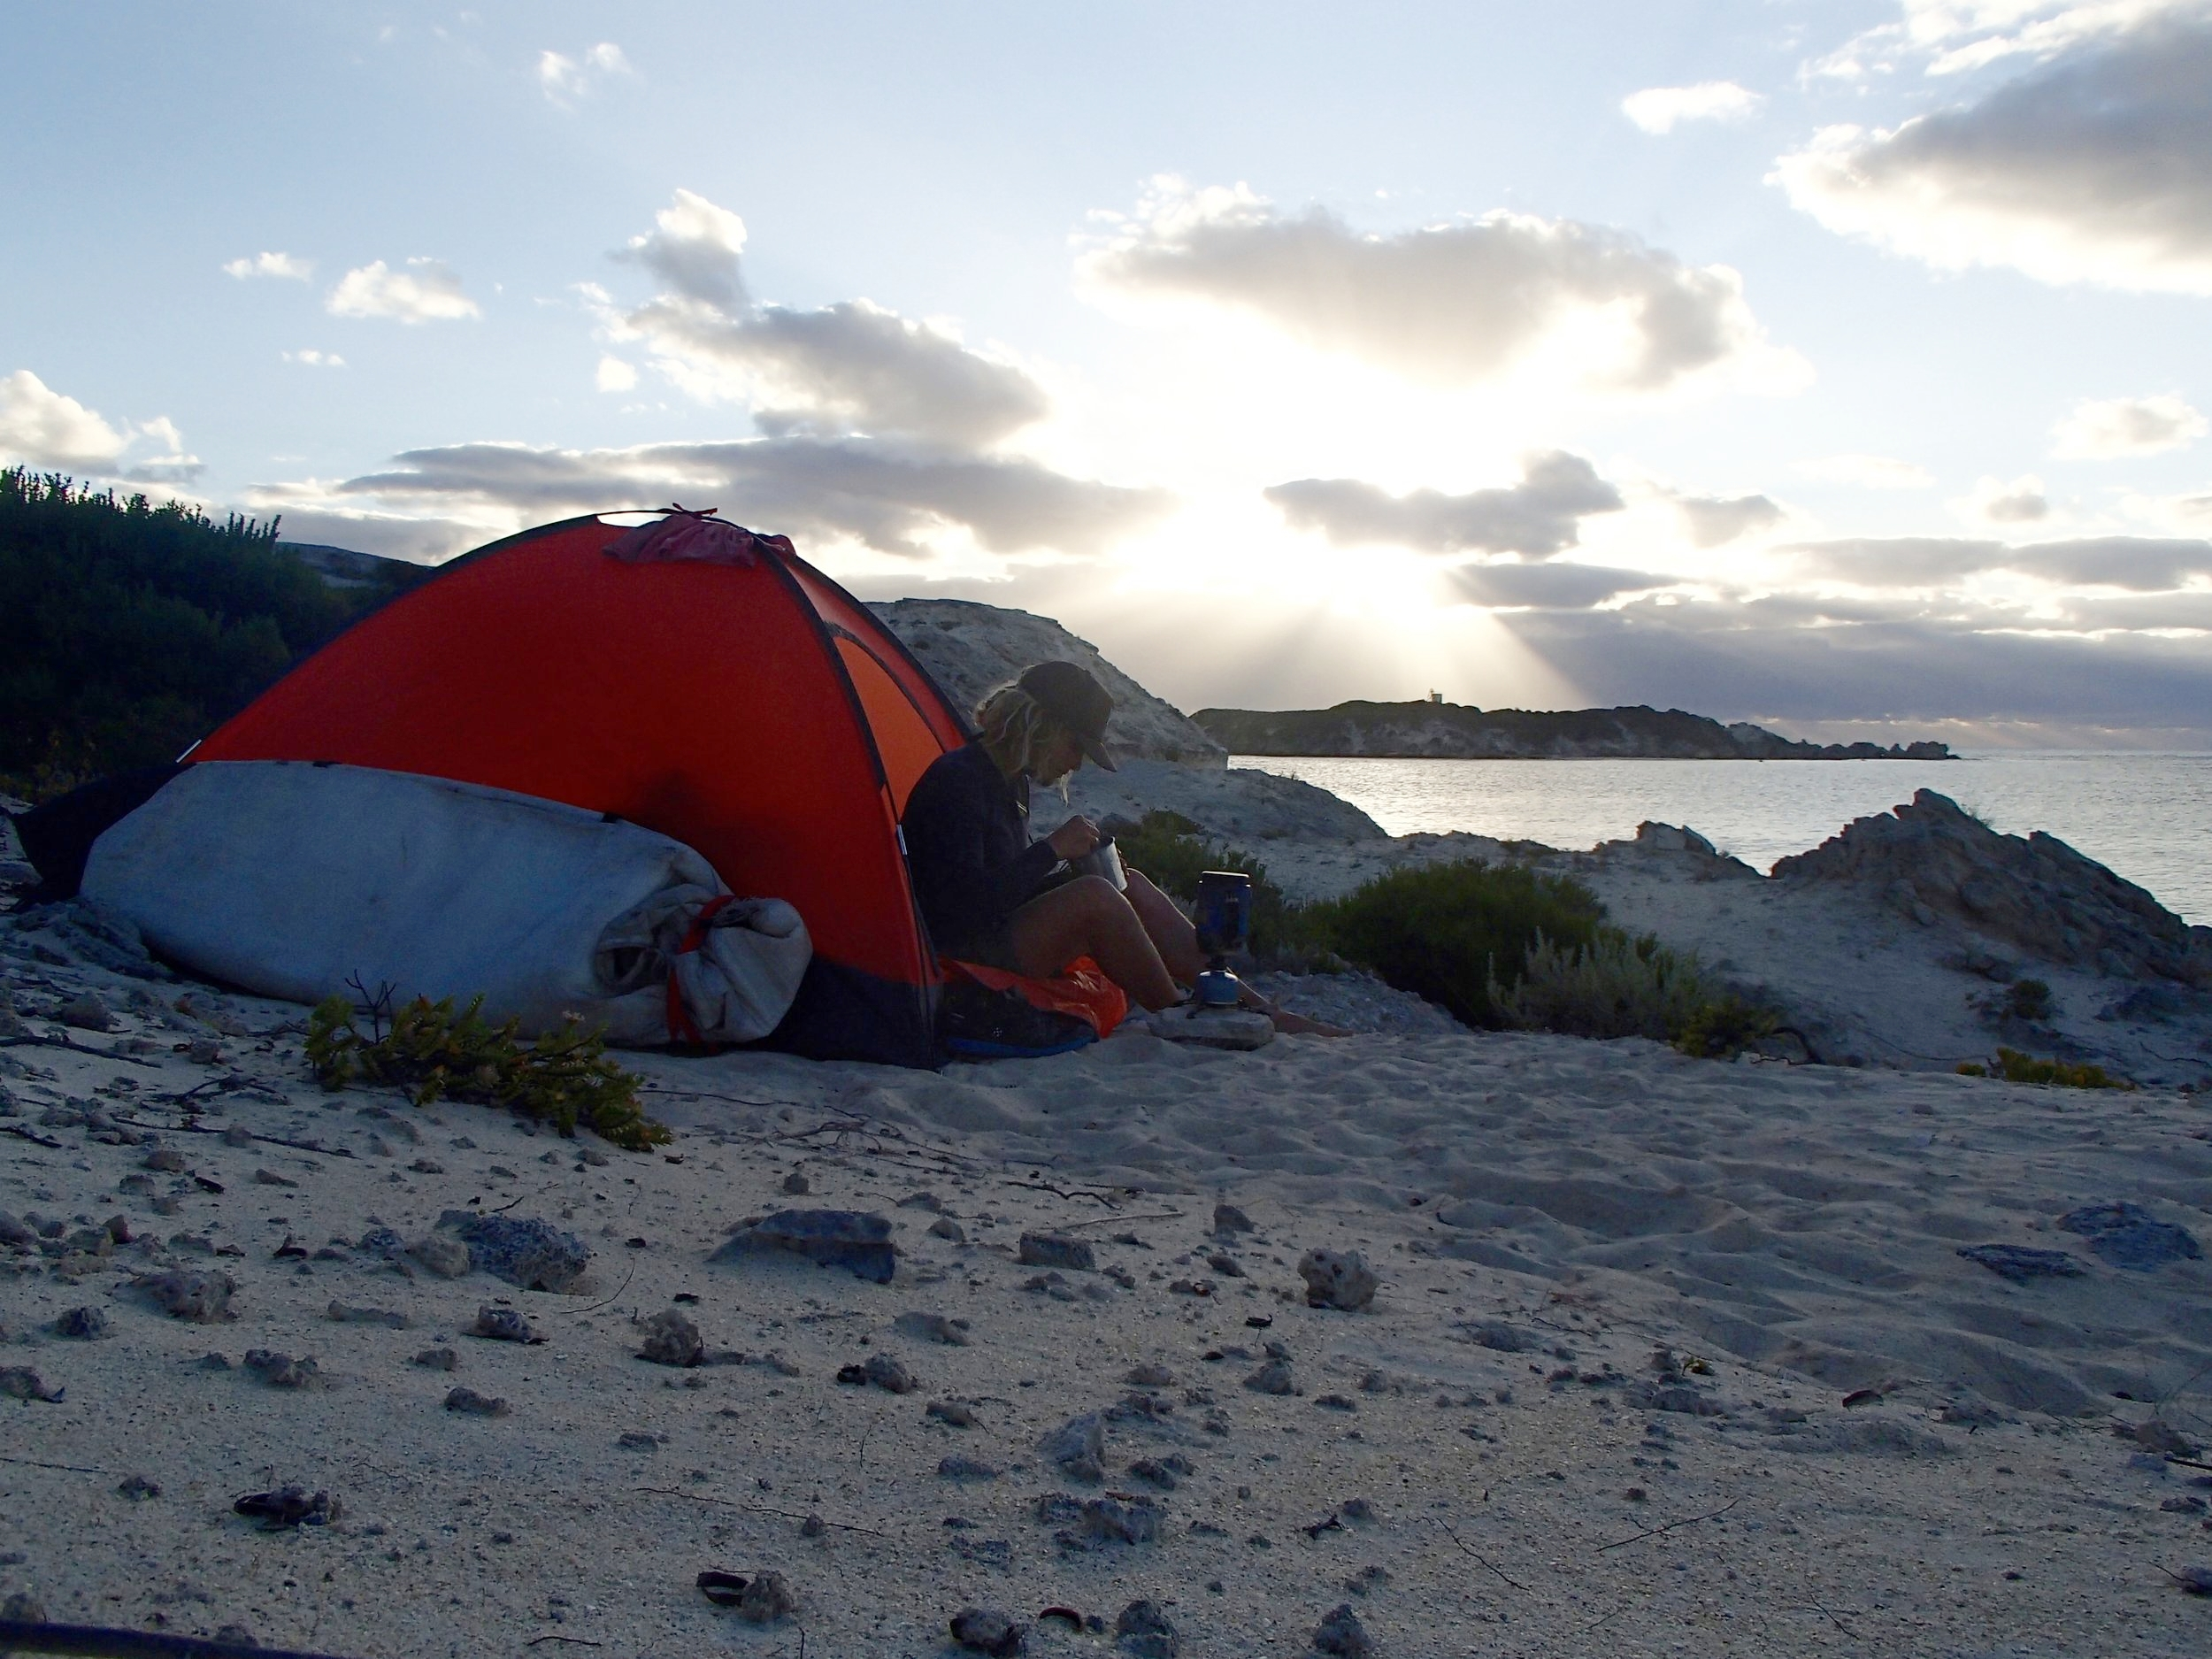 Camping in Hamelin Bay, West Australia on the Cape to Cape Track